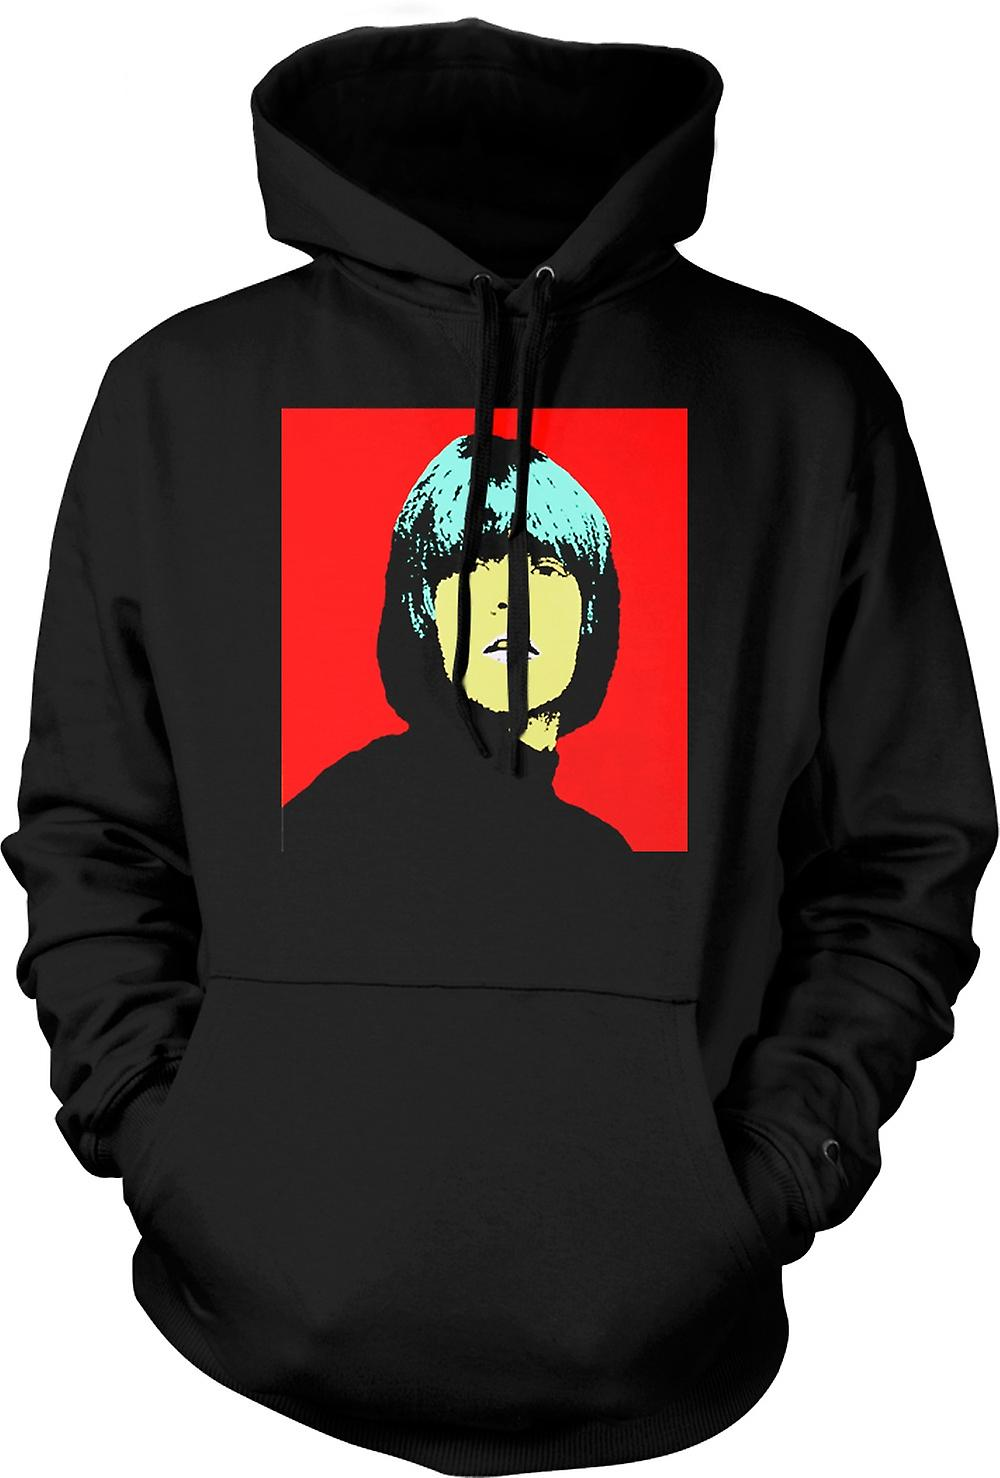 Mens Hoodie - Rolling Stones Brian Jones - Pop Art